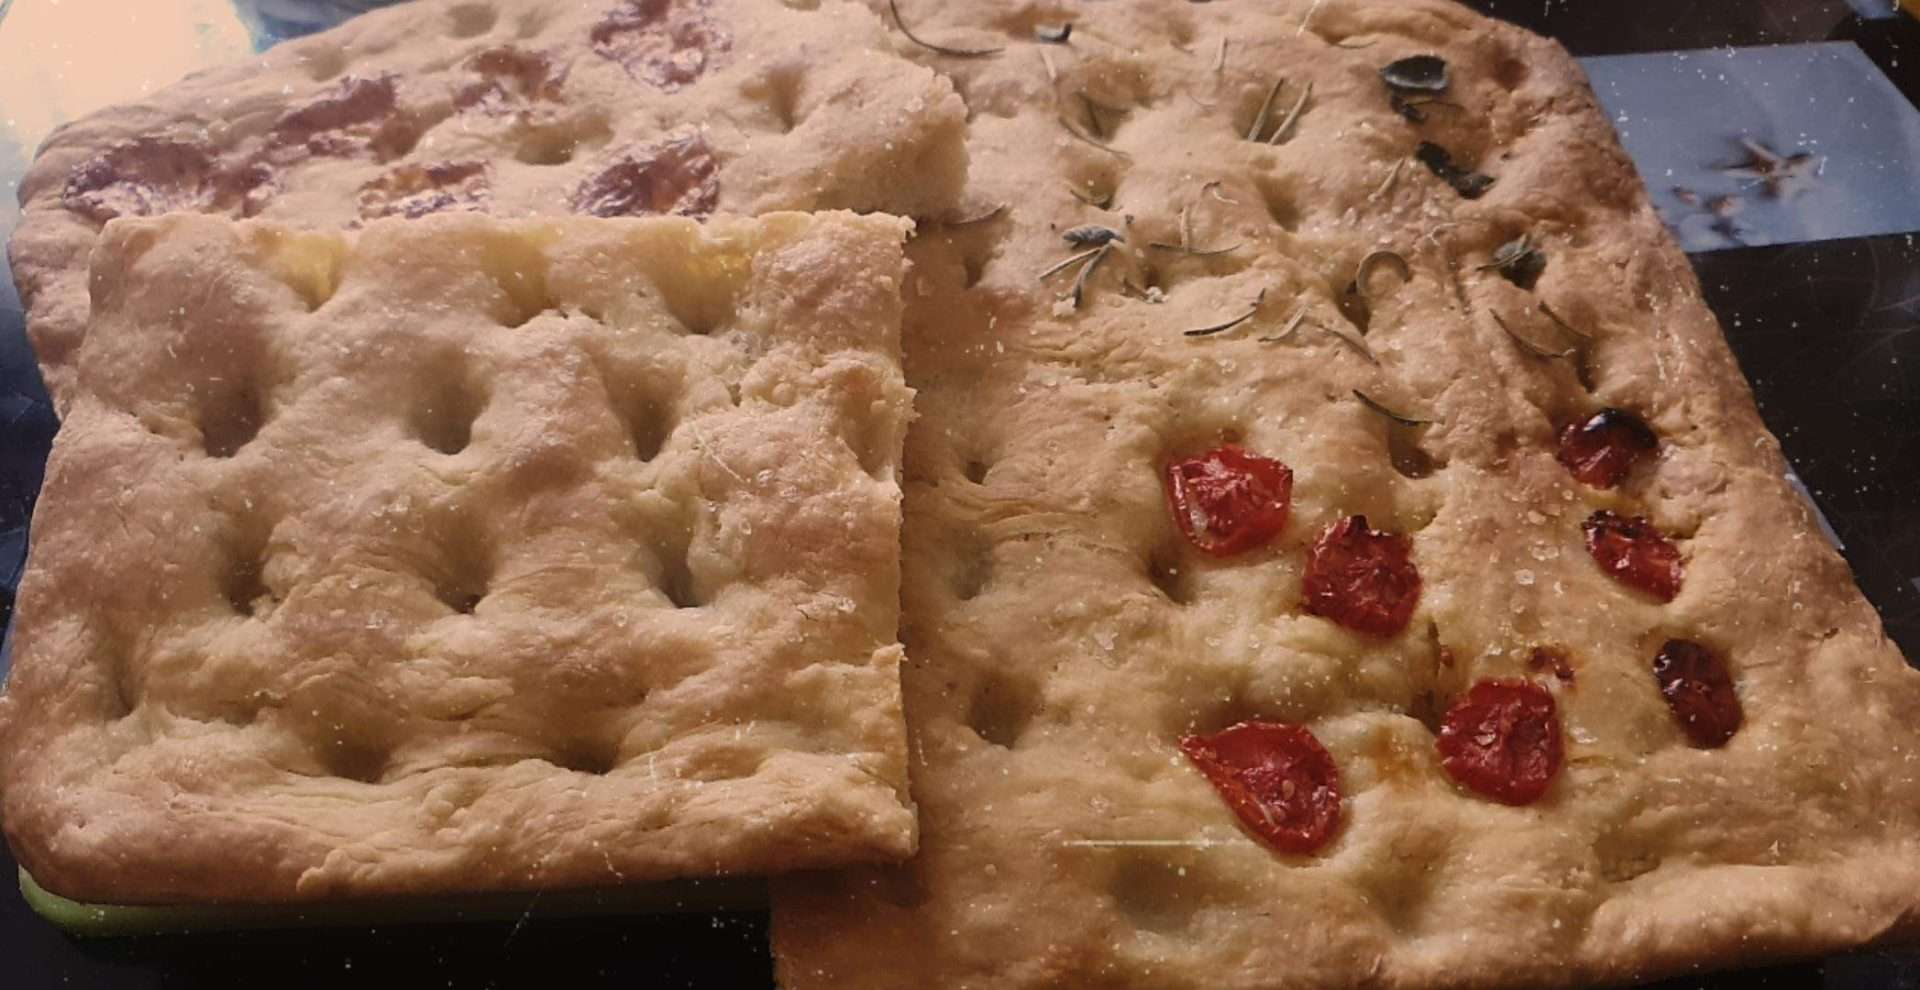 Homemade focaccia, good and fast